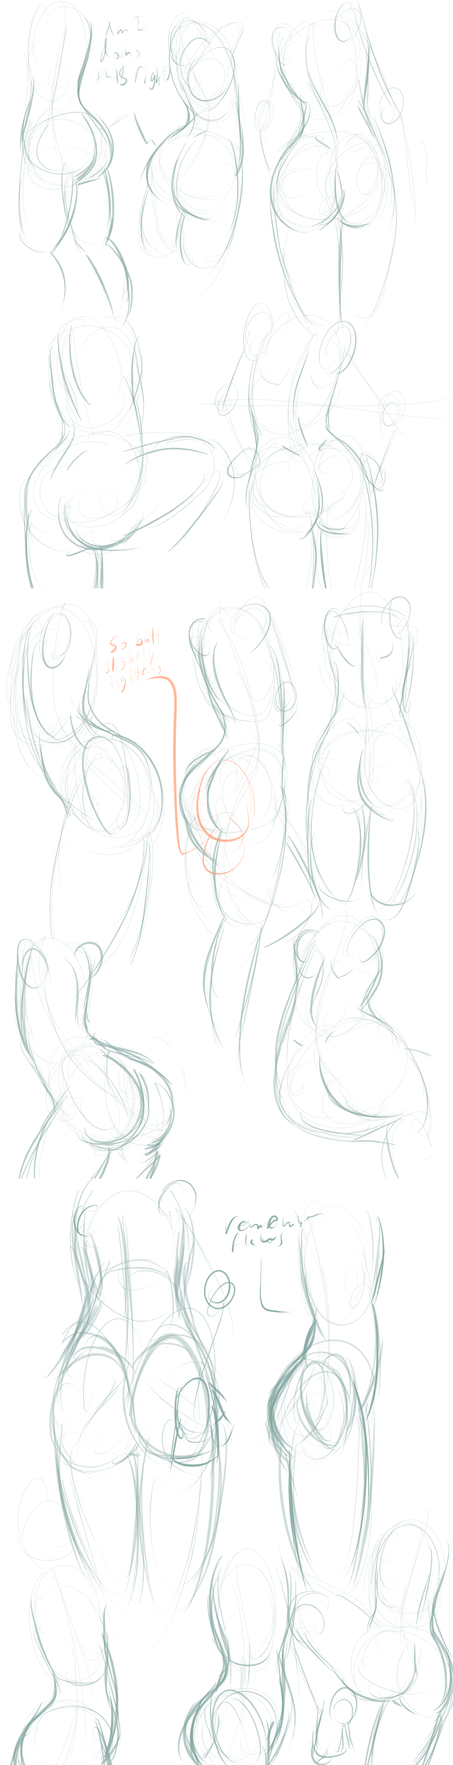 Butt Study by EmeraldEpoch